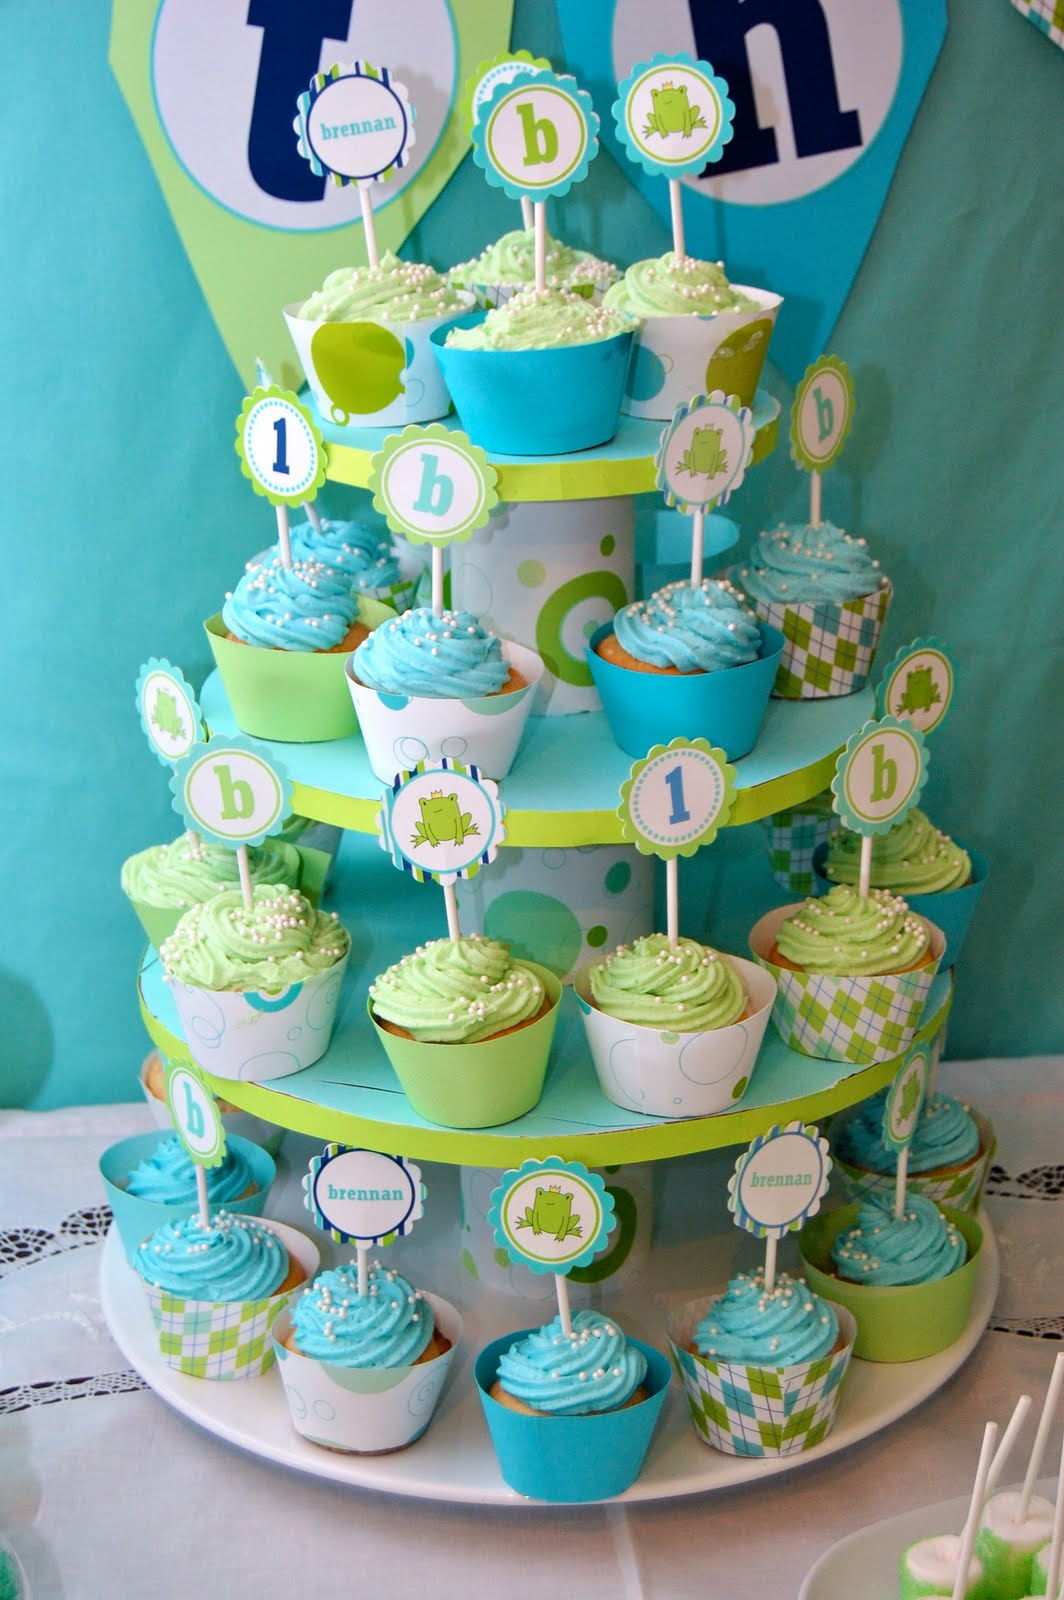 Frog Prince Cupcake Tower - it was DIY! - Frog Prince Paperie